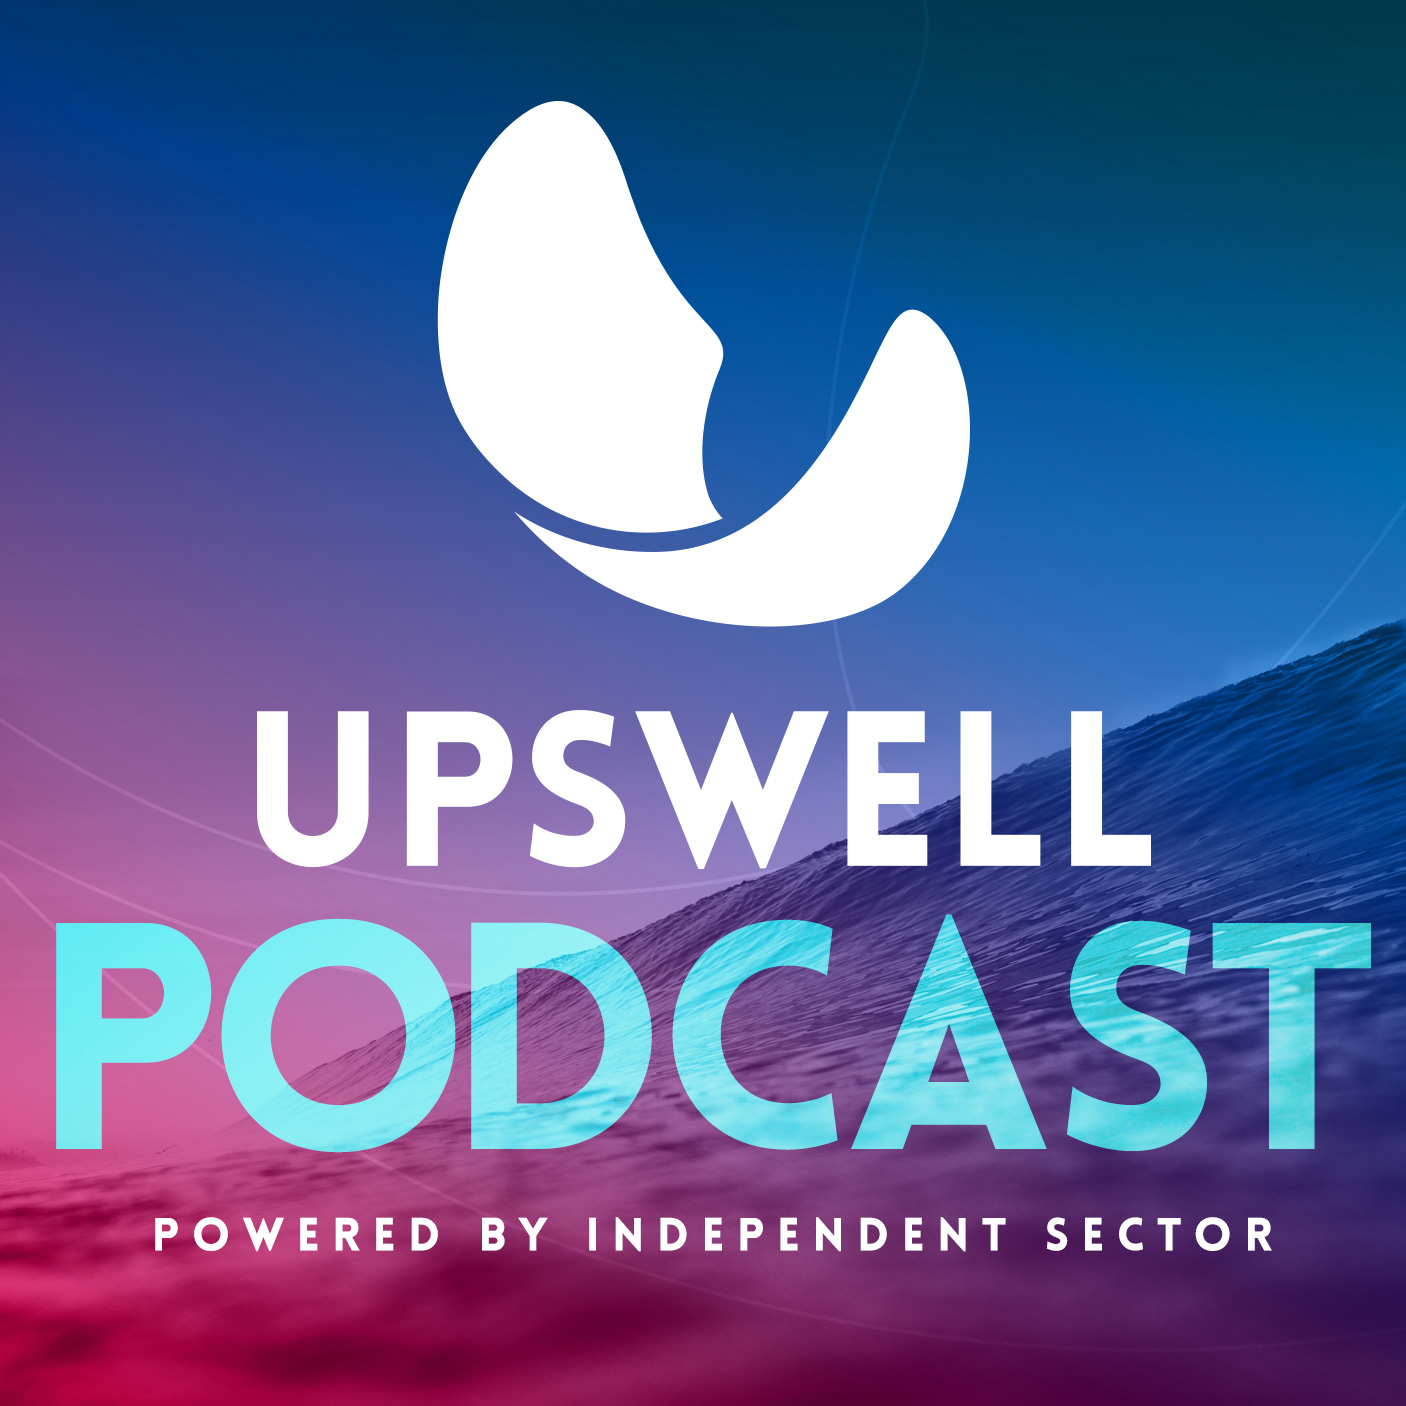 Upswell Podcast / Episode 9 / Live from Upswell ft. AOK